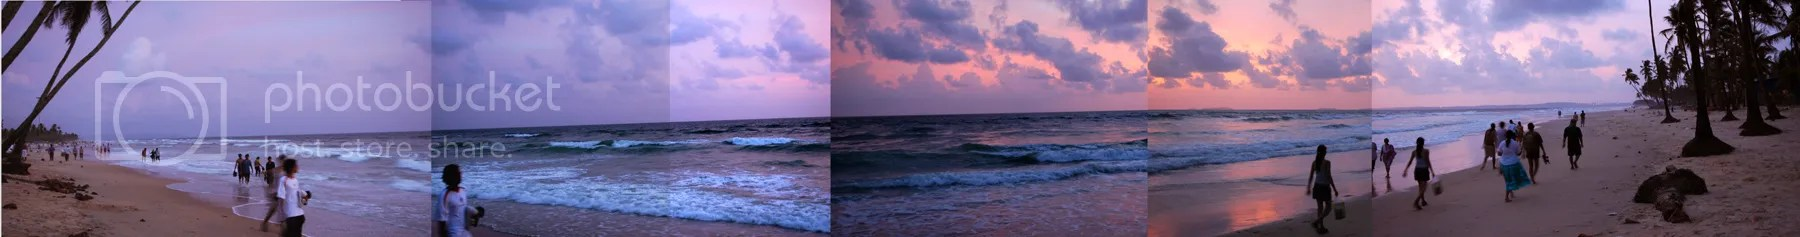 Colva Beach Goa sunset panorama pics by Arun Shanbhag